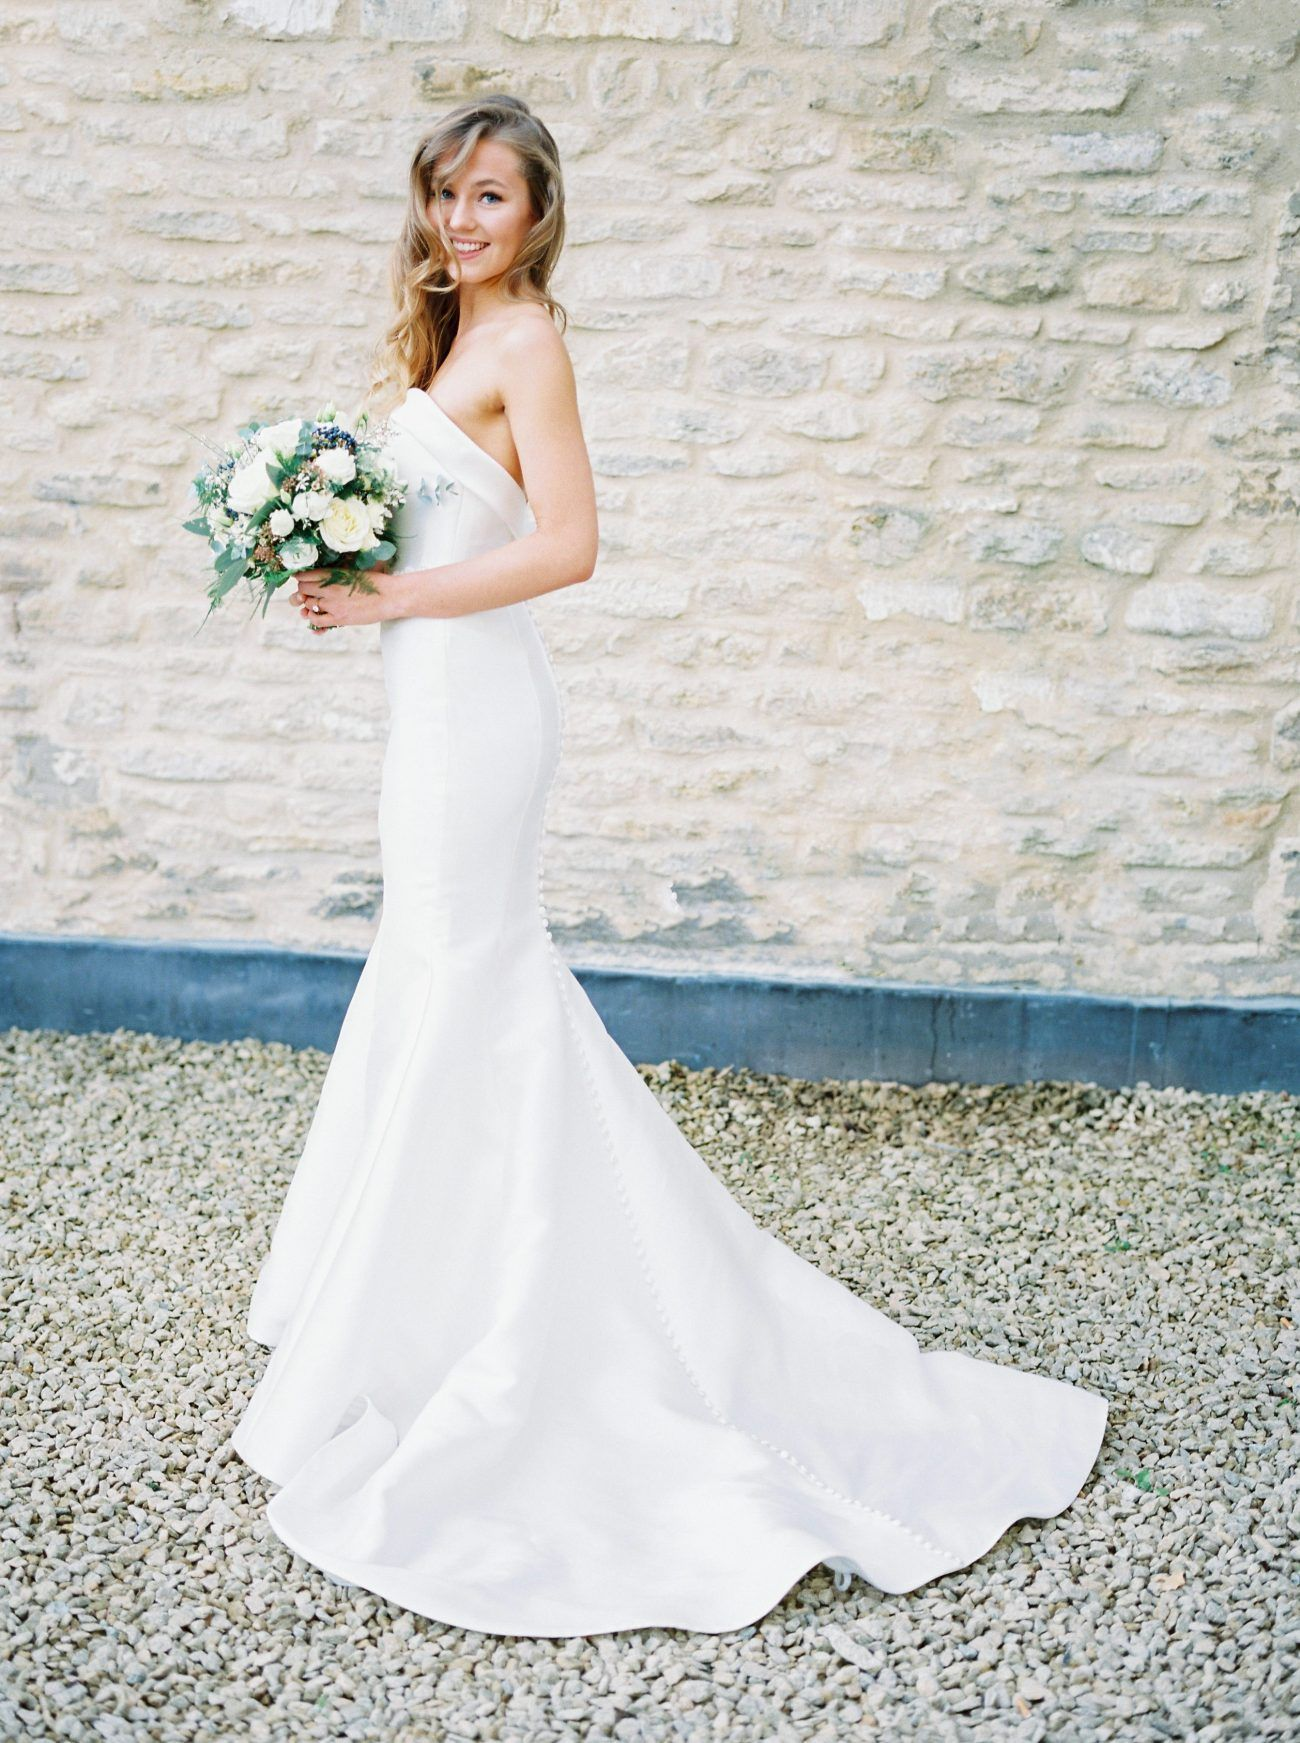 A Warm Winter Wedding In The Cotswolds